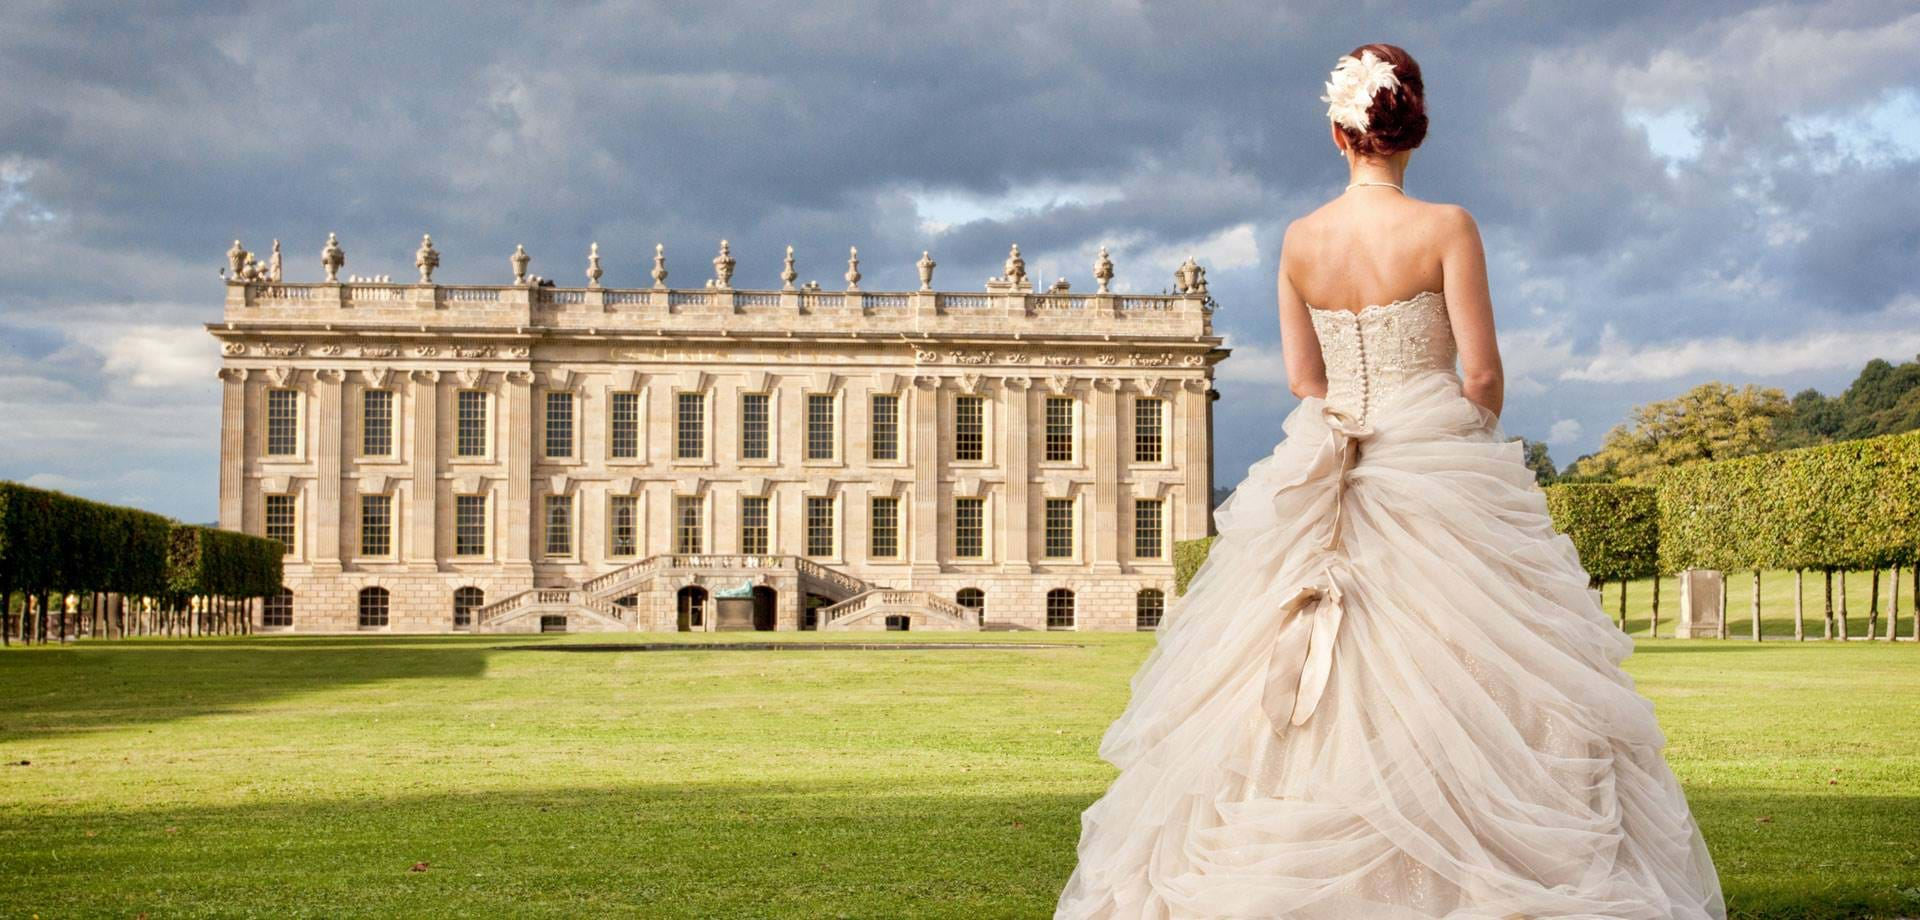 Weddings at Chatsworth in the heart of Derbyshire and the Peak District. Image: Venus Wedding Photography